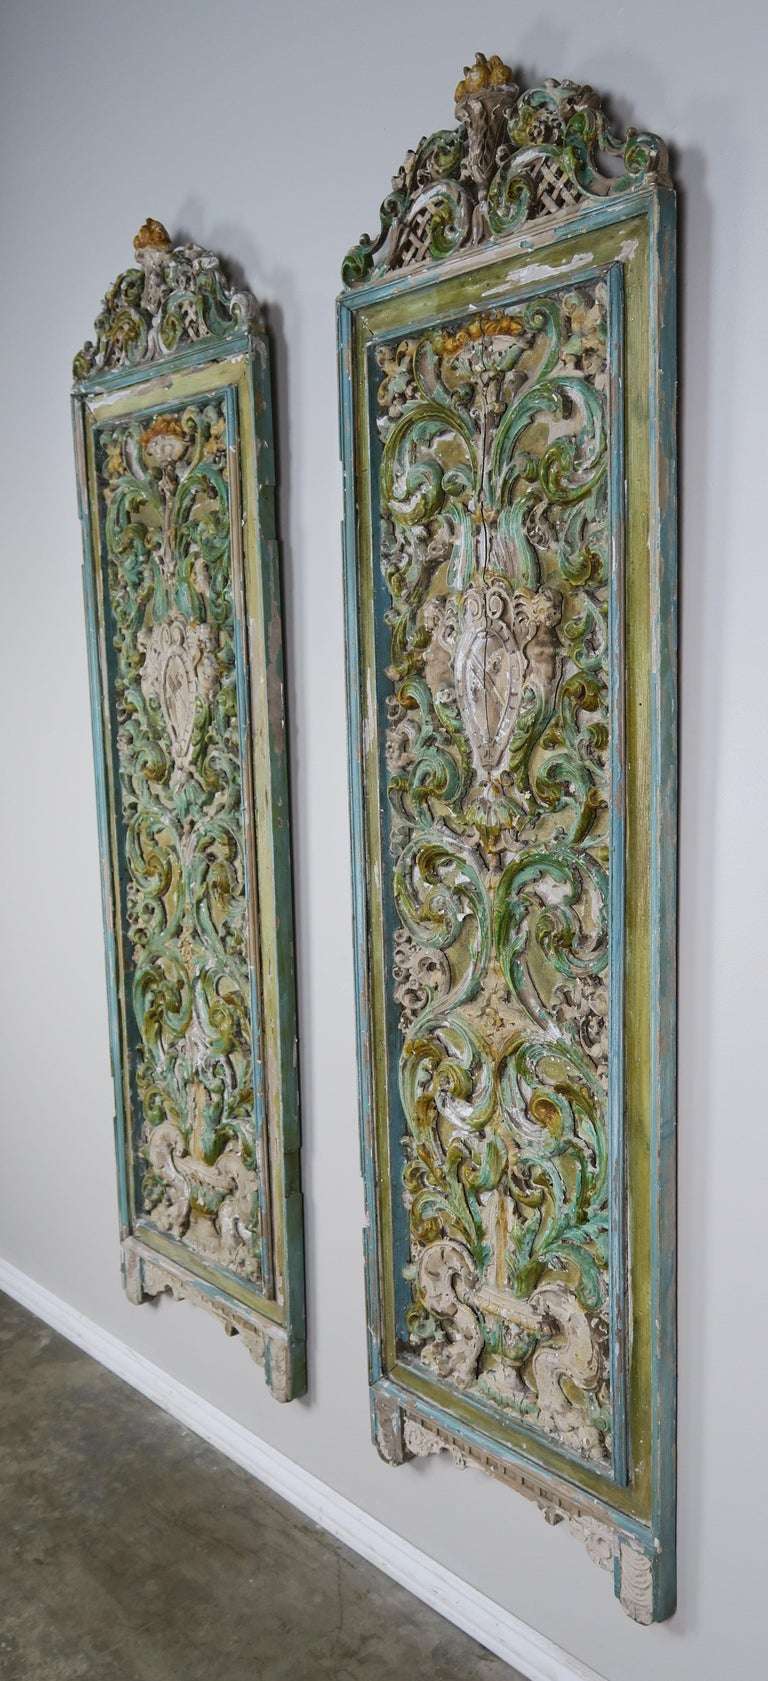 19th Century Italian Painted Carved Wood Panels, Pair For Sale 7